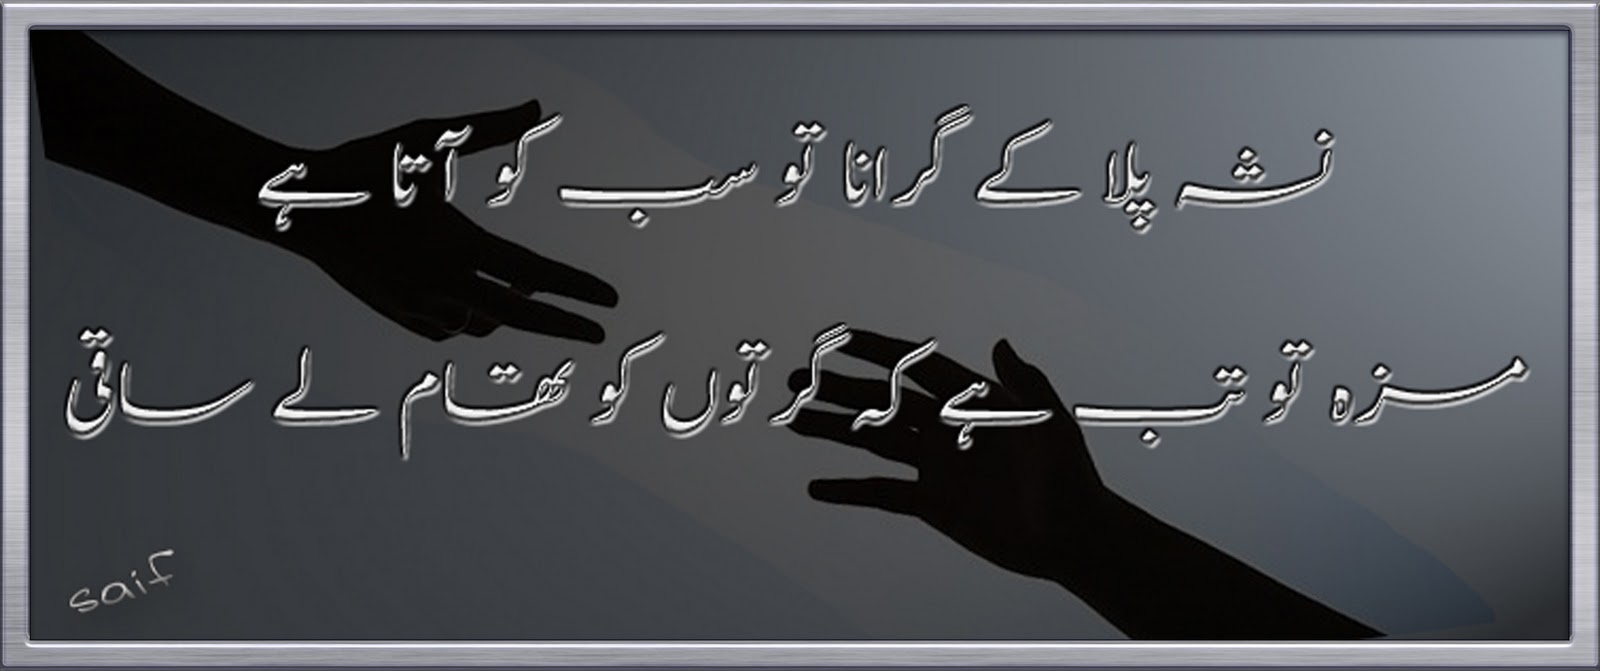 Posted by Saif Qazi On 1:06 بعد دوپہر No comments